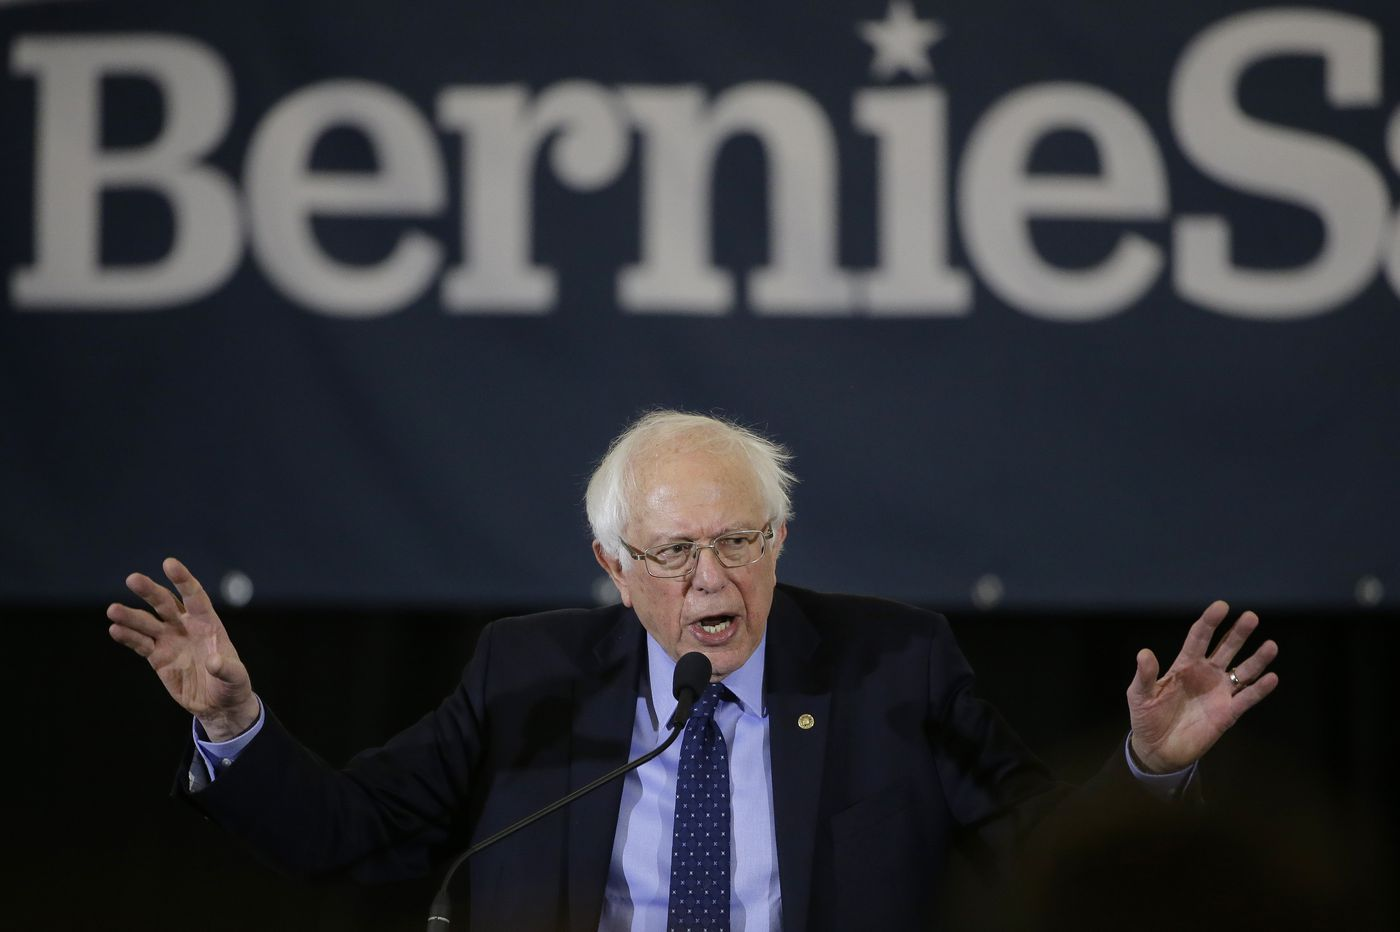 Bernie Sanders Just Showed His Full-Throated Embrace of Capitalism